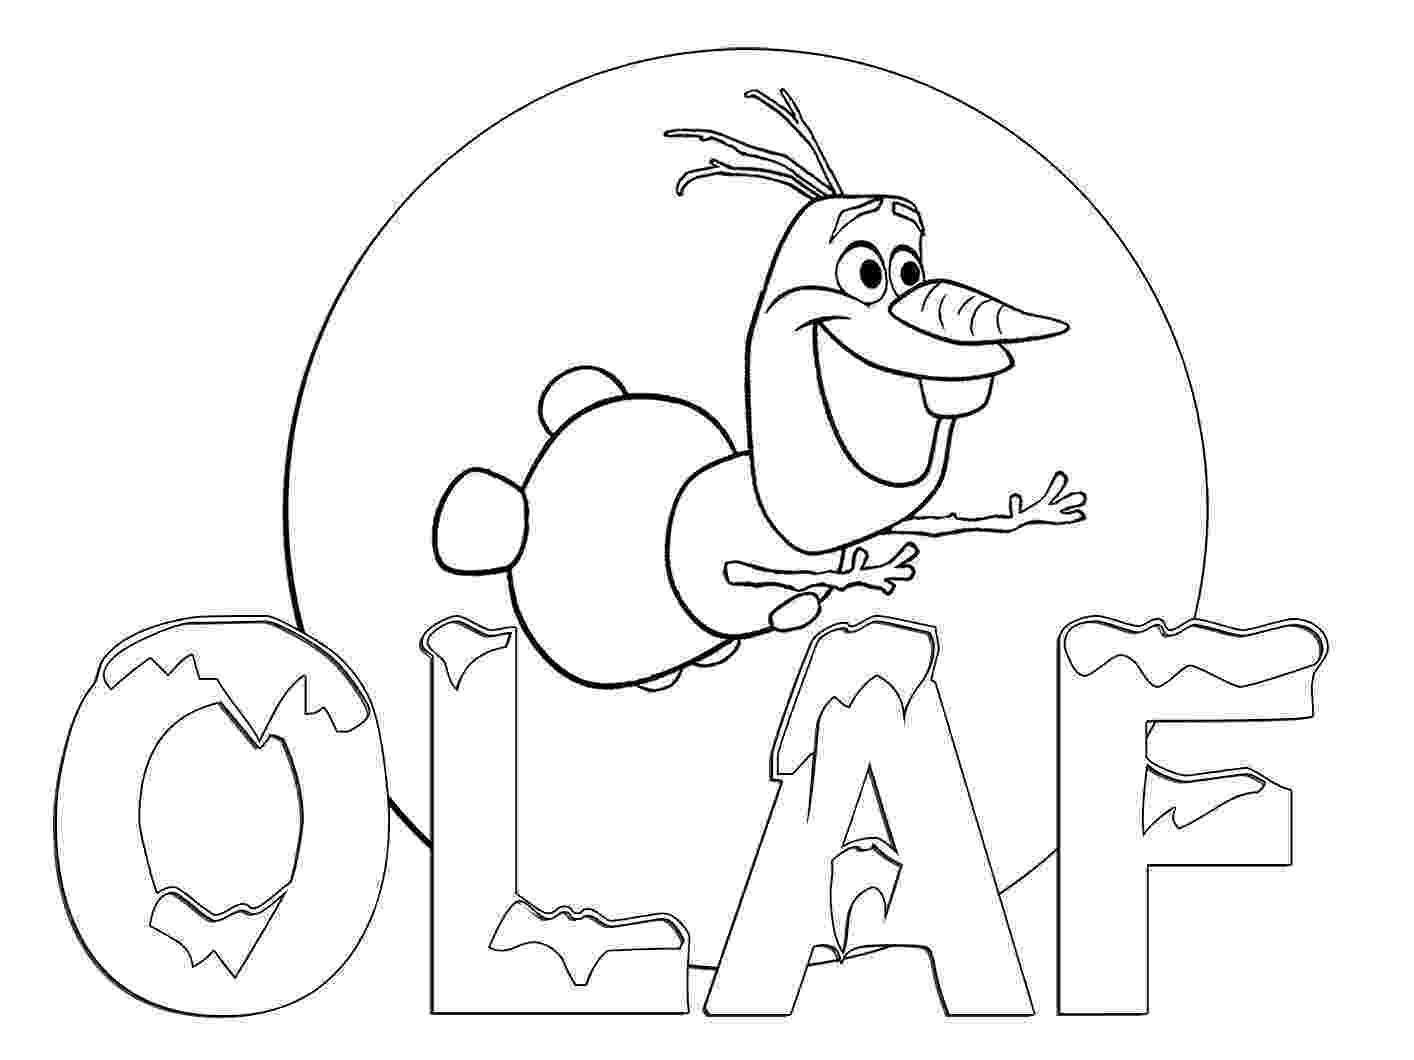 frozen free coloring pages free printable frozen coloring pages for kids best frozen free pages coloring 1 1